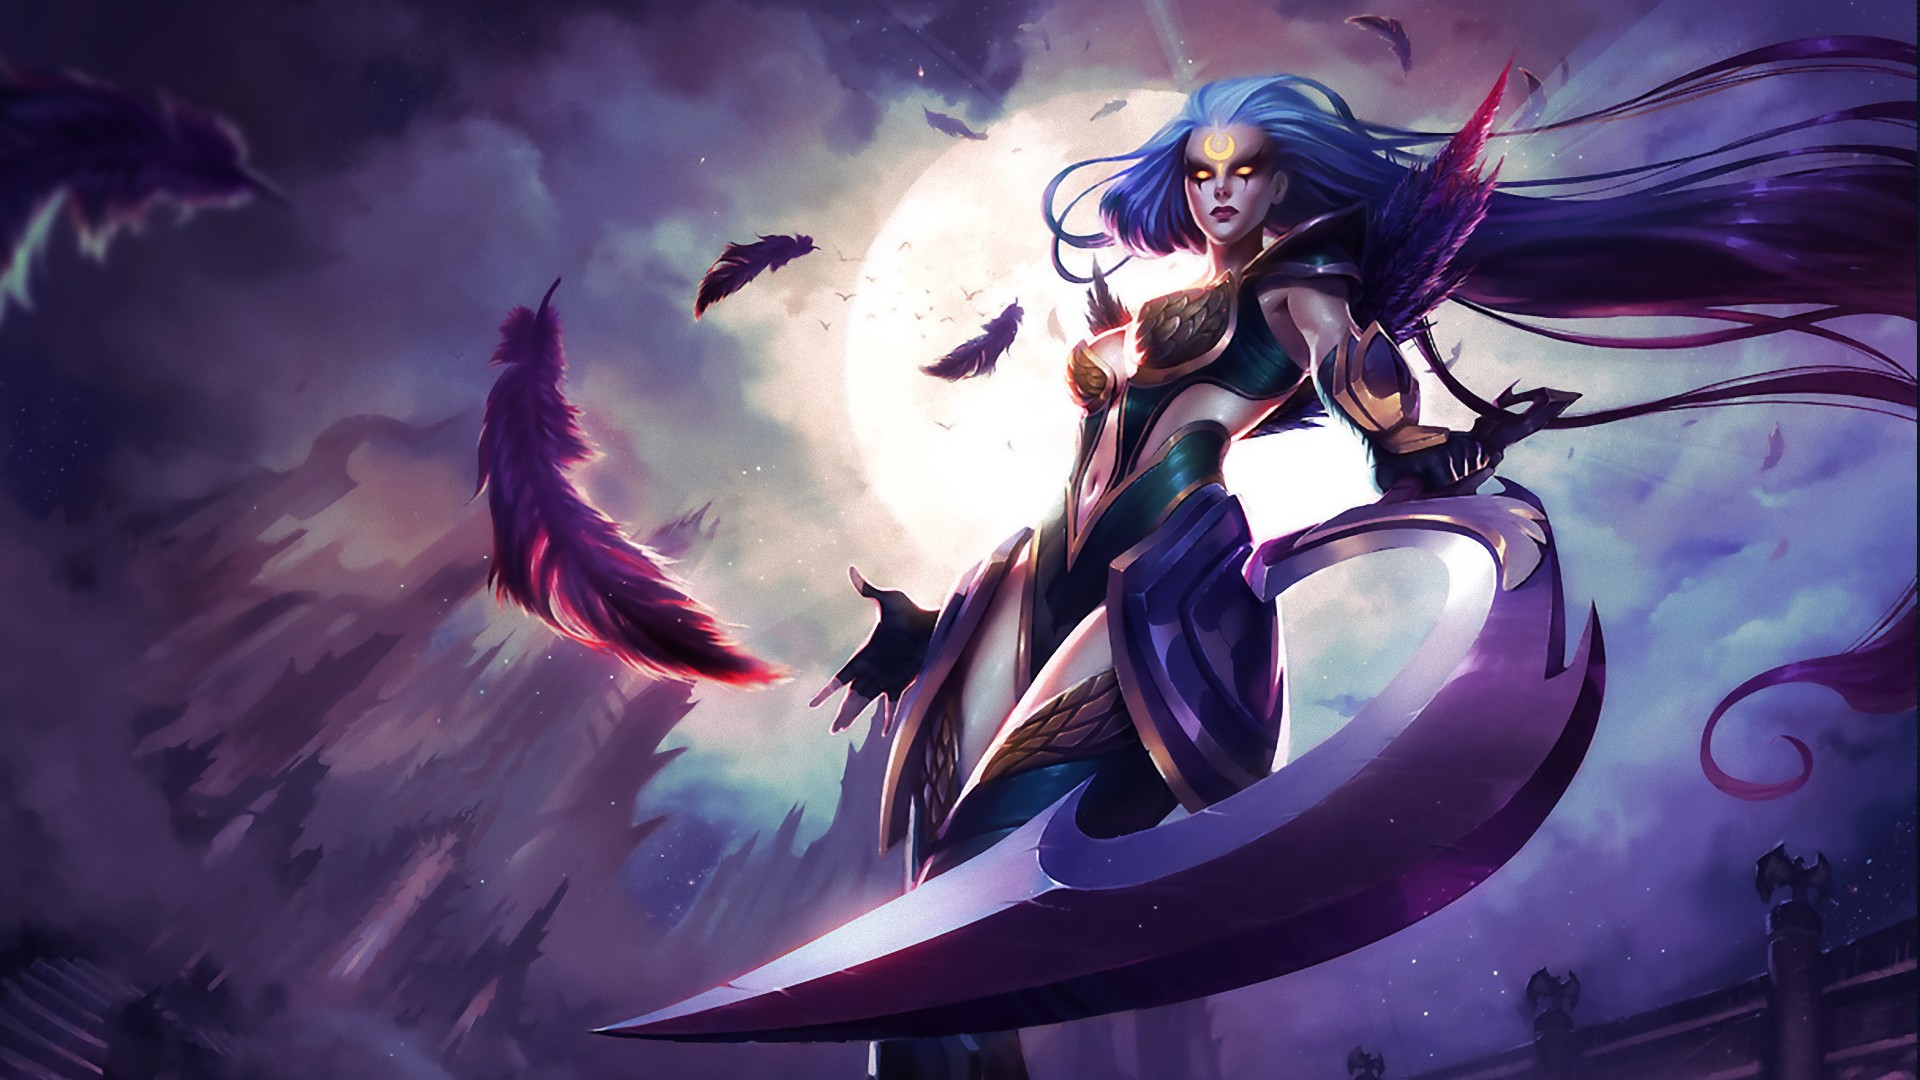 Dark Valkyrie Diana HD Wallpaper Background Image 1920x1080 1920x1080